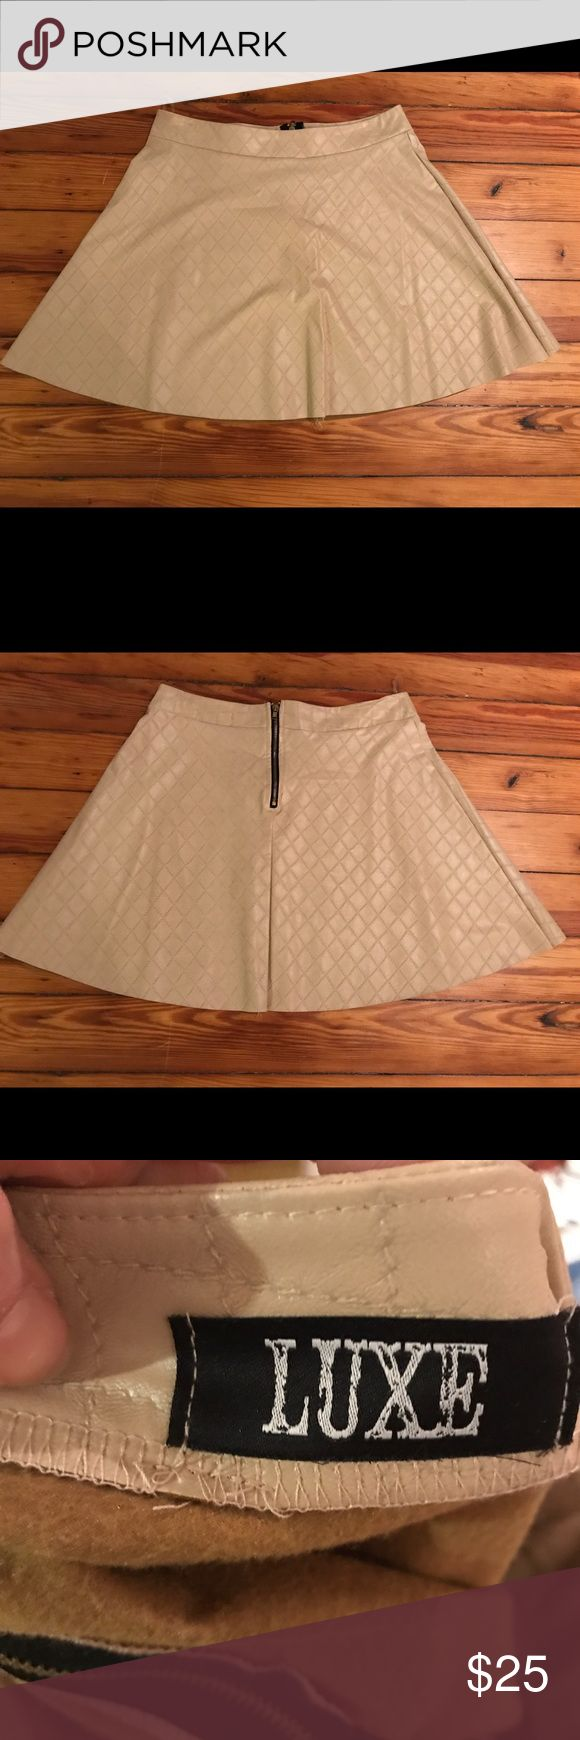 EUC Faux Leather Skater Skirt Worn once, light camel-colored skirt. Mini fit with zipper back. True to size. Purchased from a local boutique - brand is Luxe. Luxe Skirts Circle & Skater